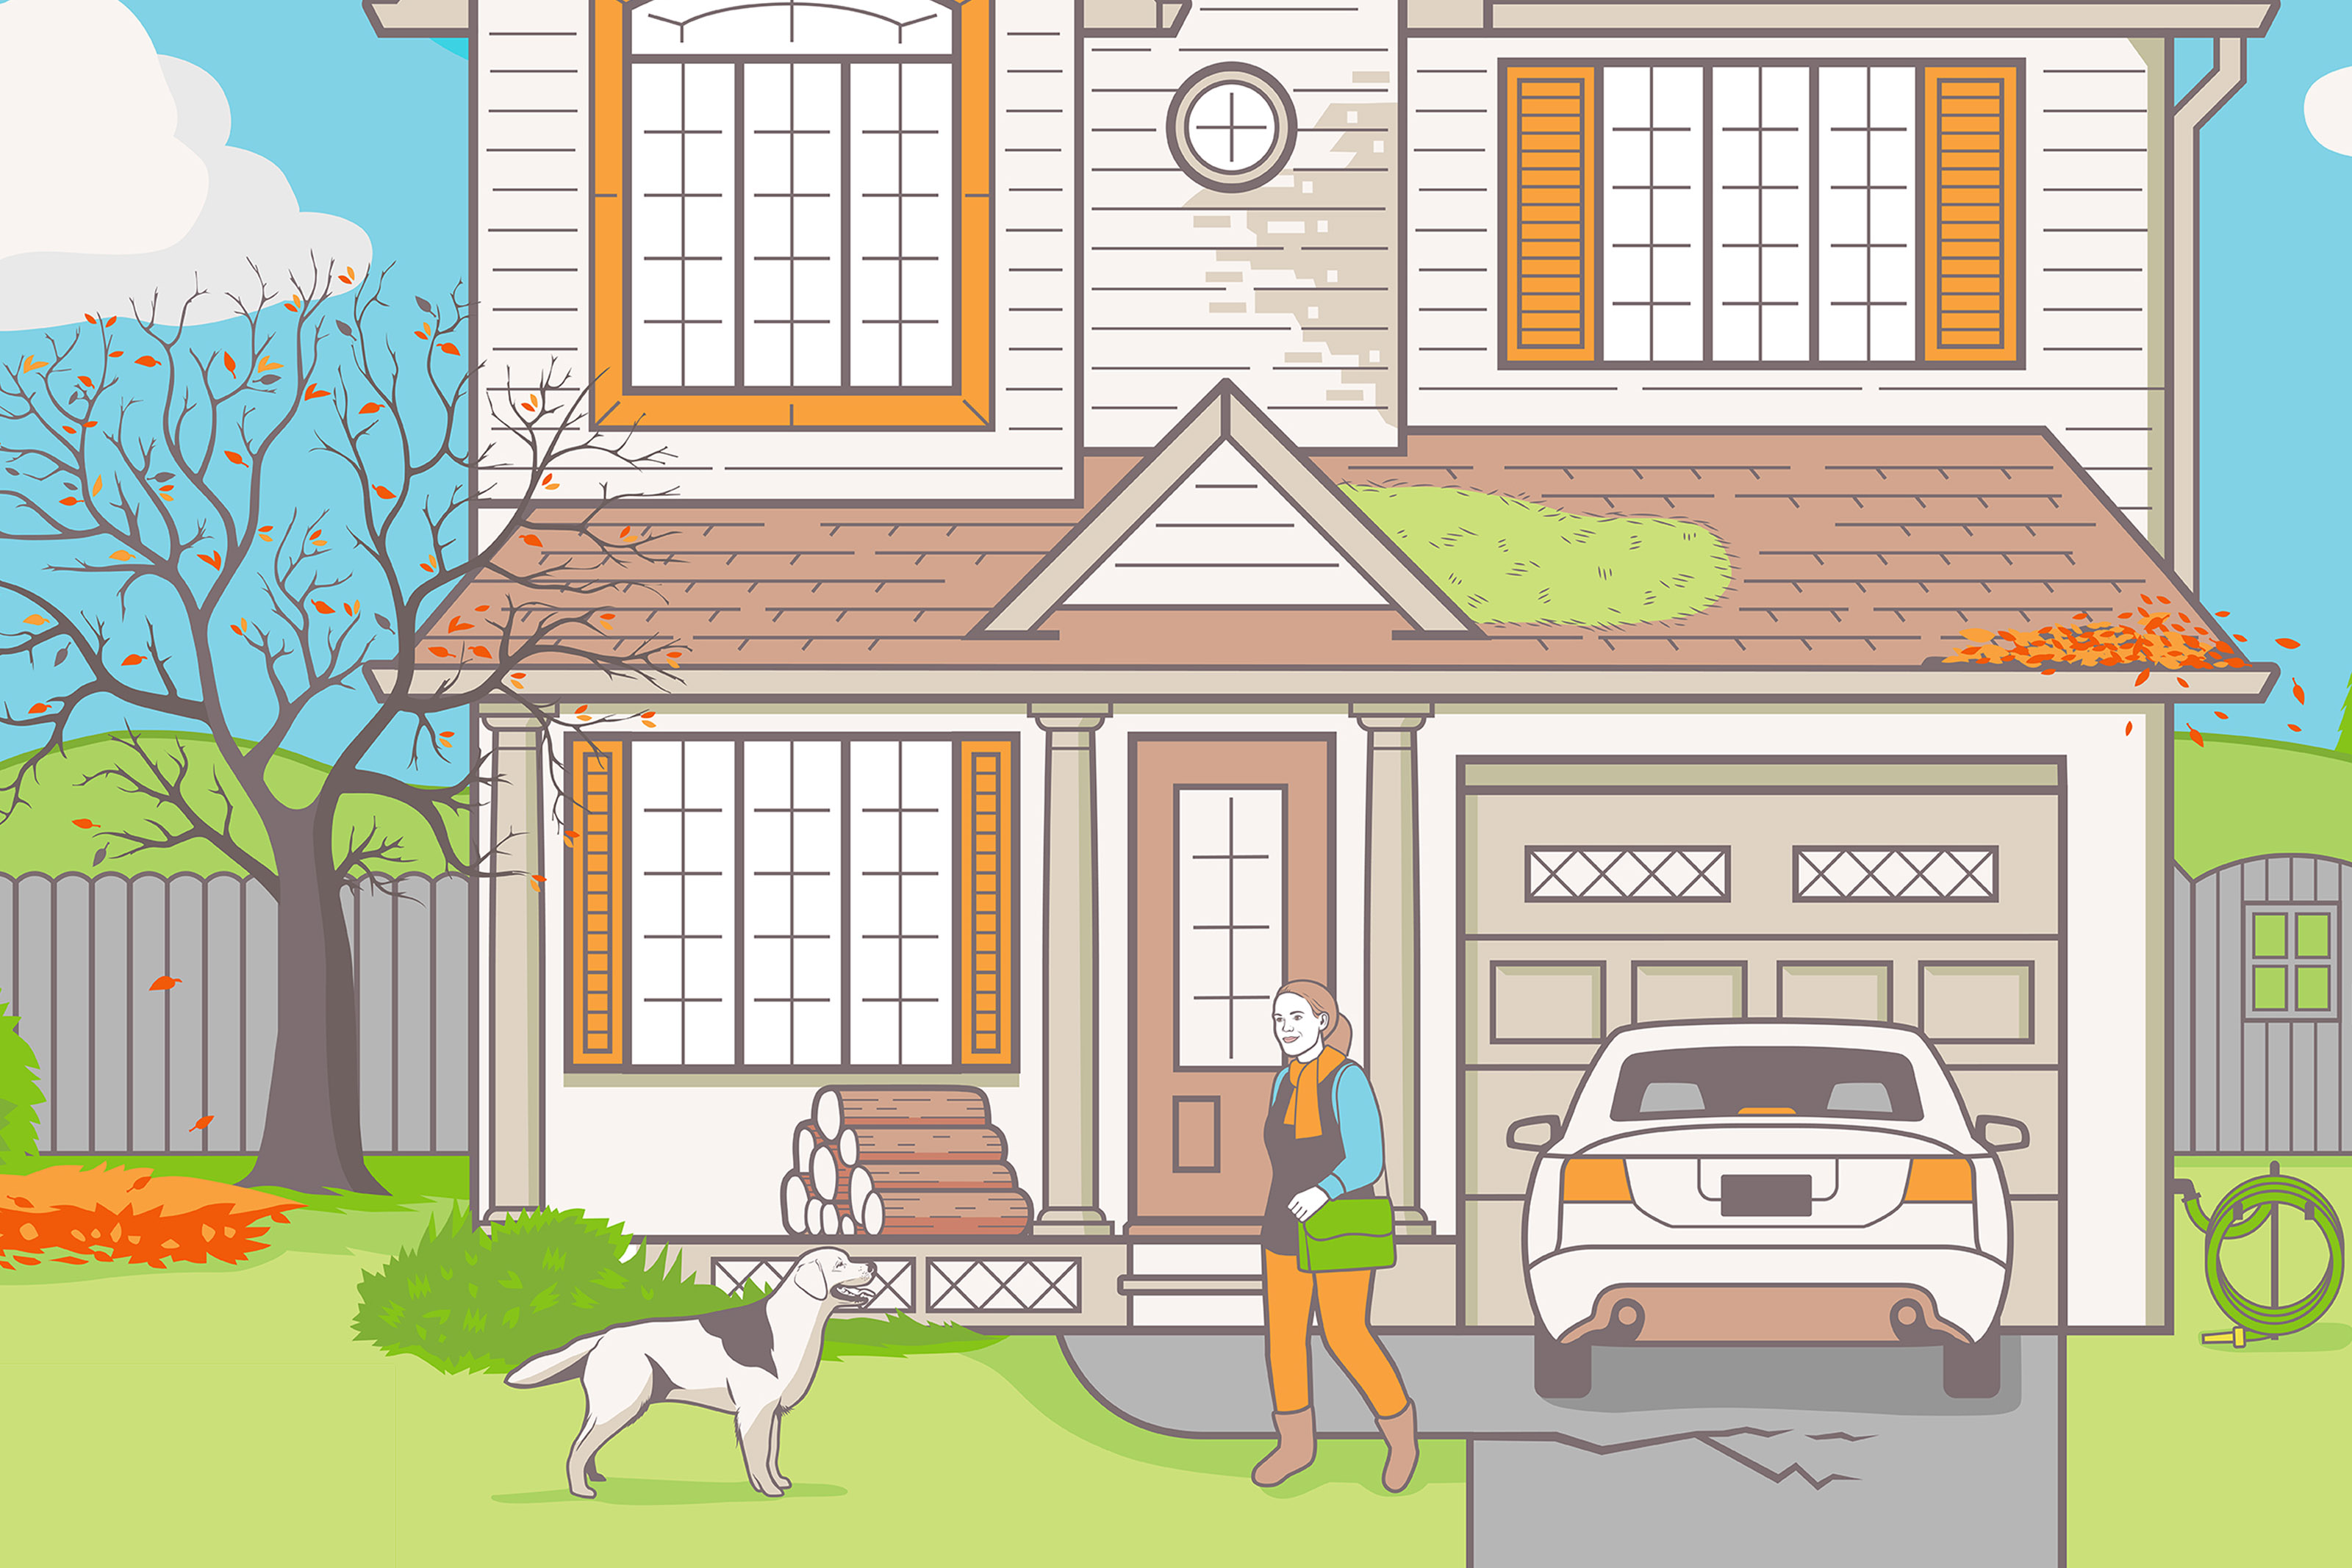 Illustration of happy woman with dog leaving house